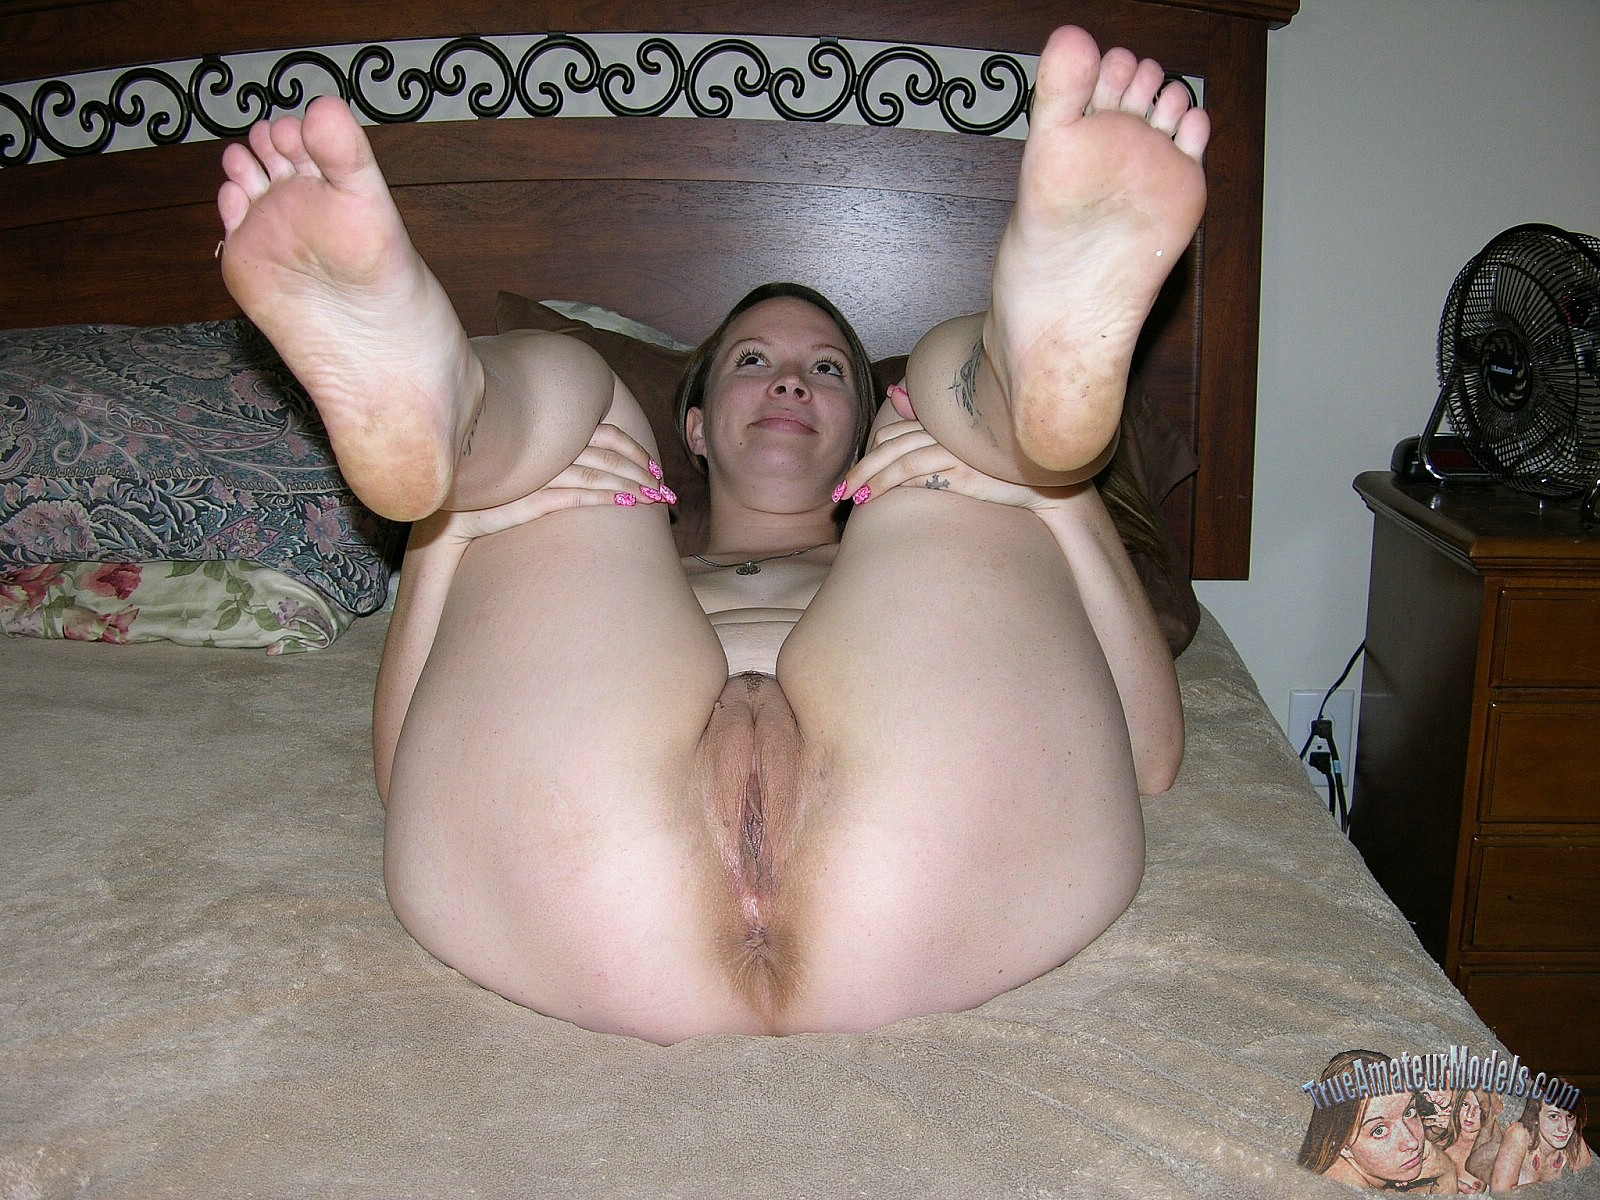 Full-grown nude plump amateurs